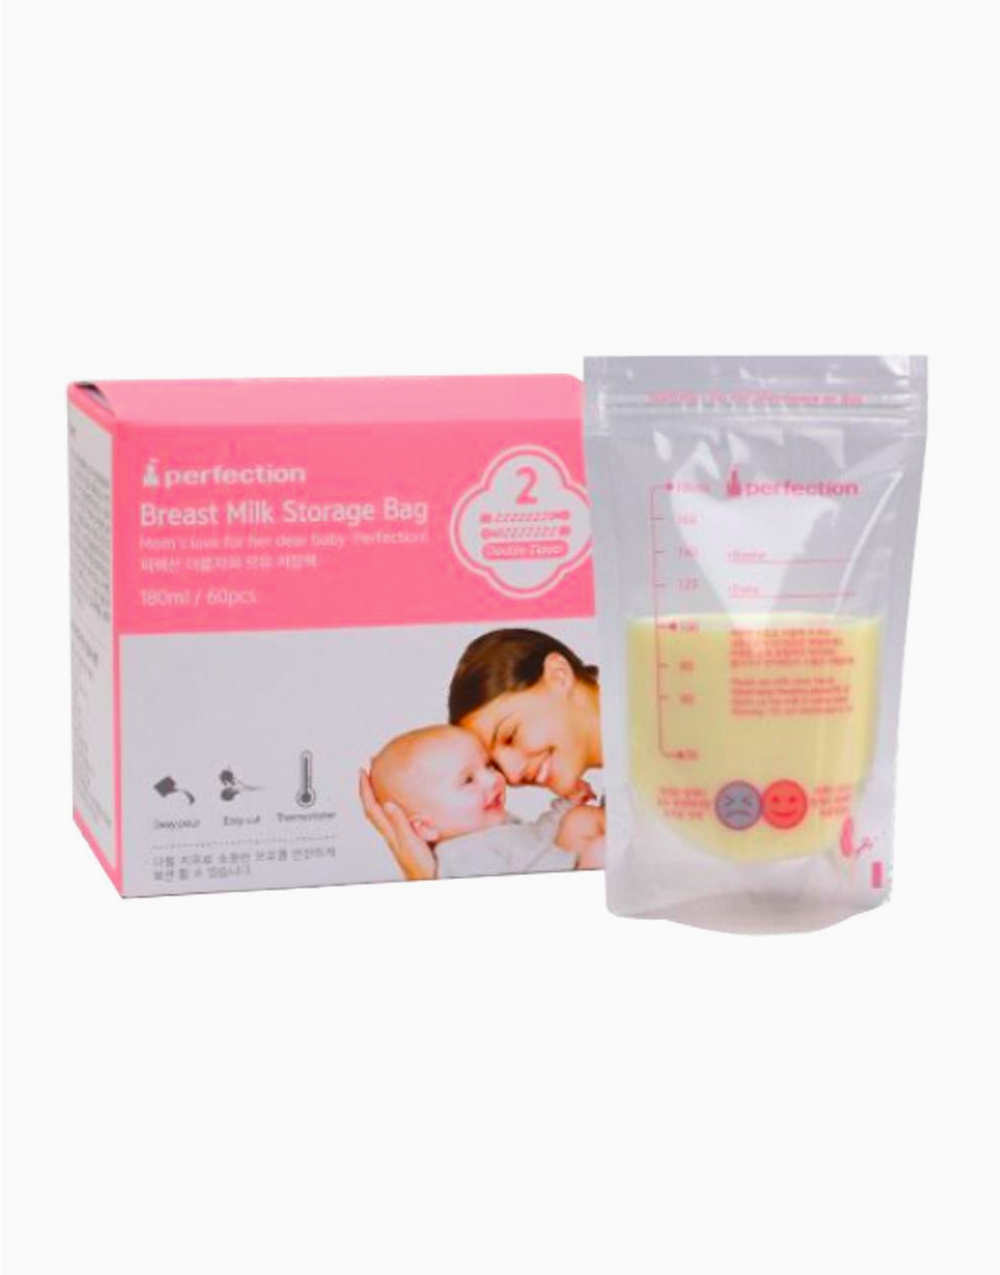 Double Zipper Breast Milk Bag with Temp Detection 180ml / 60 Pcs. (Breast Milk Storage Bag) by Perfection Baby